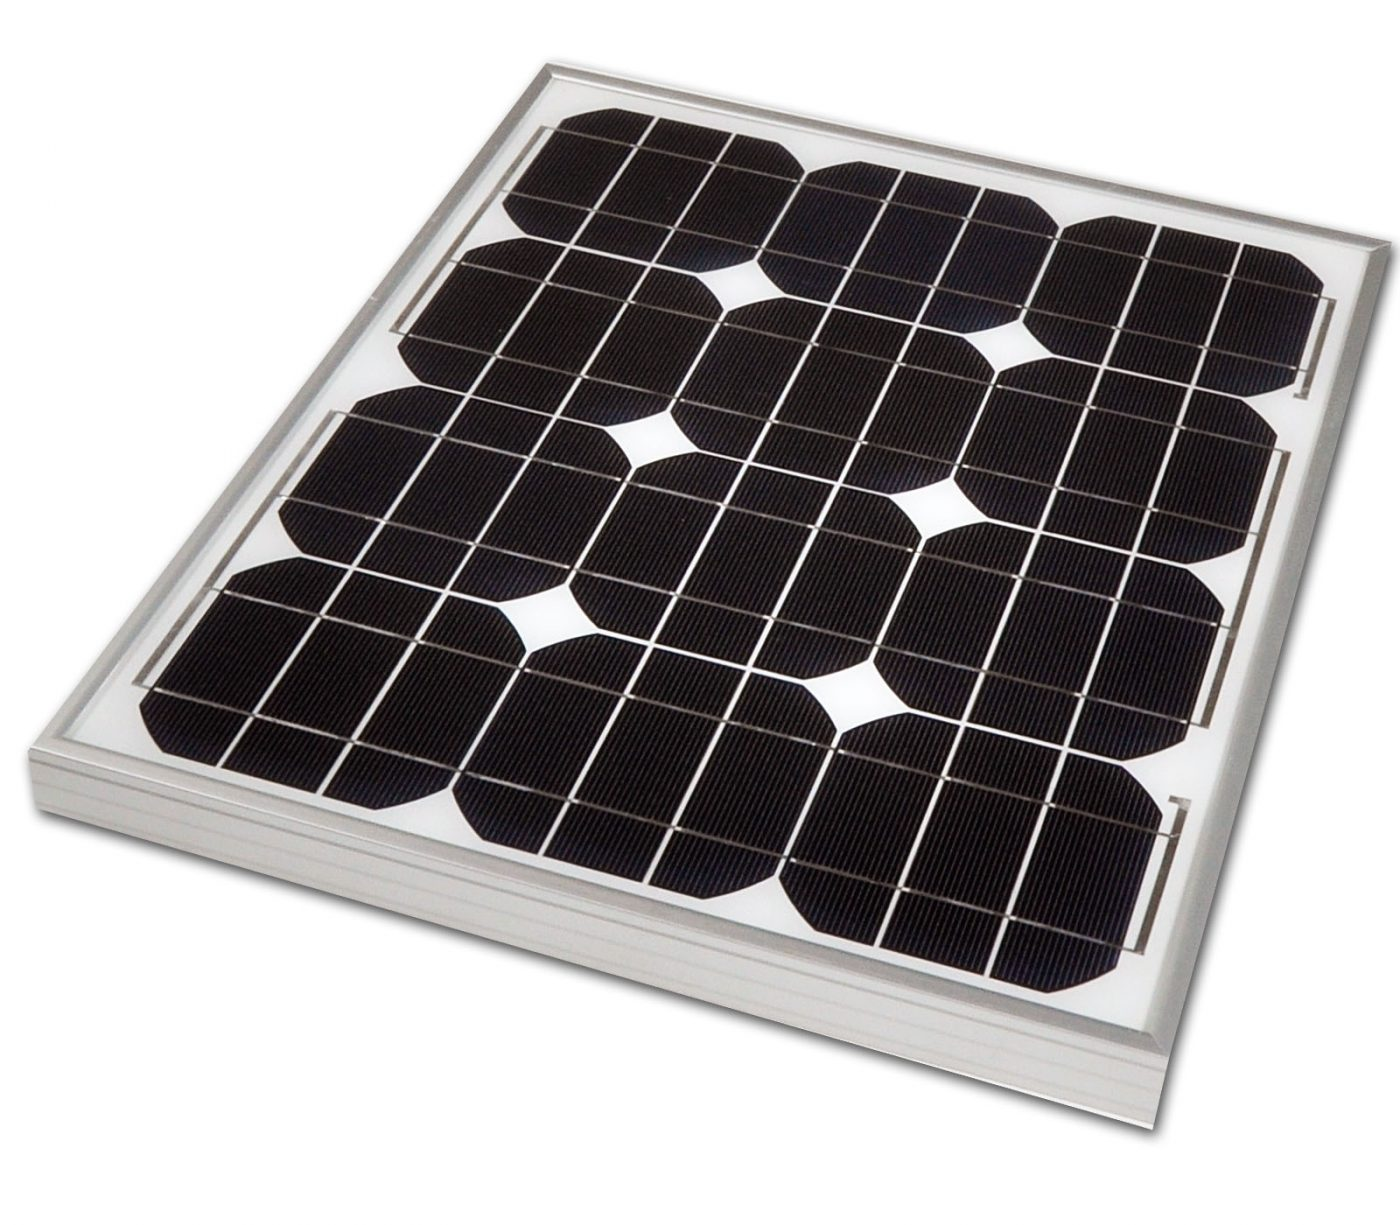 12v 30w Solar Panel Monocrystalline 536x477 10 Year Warranty